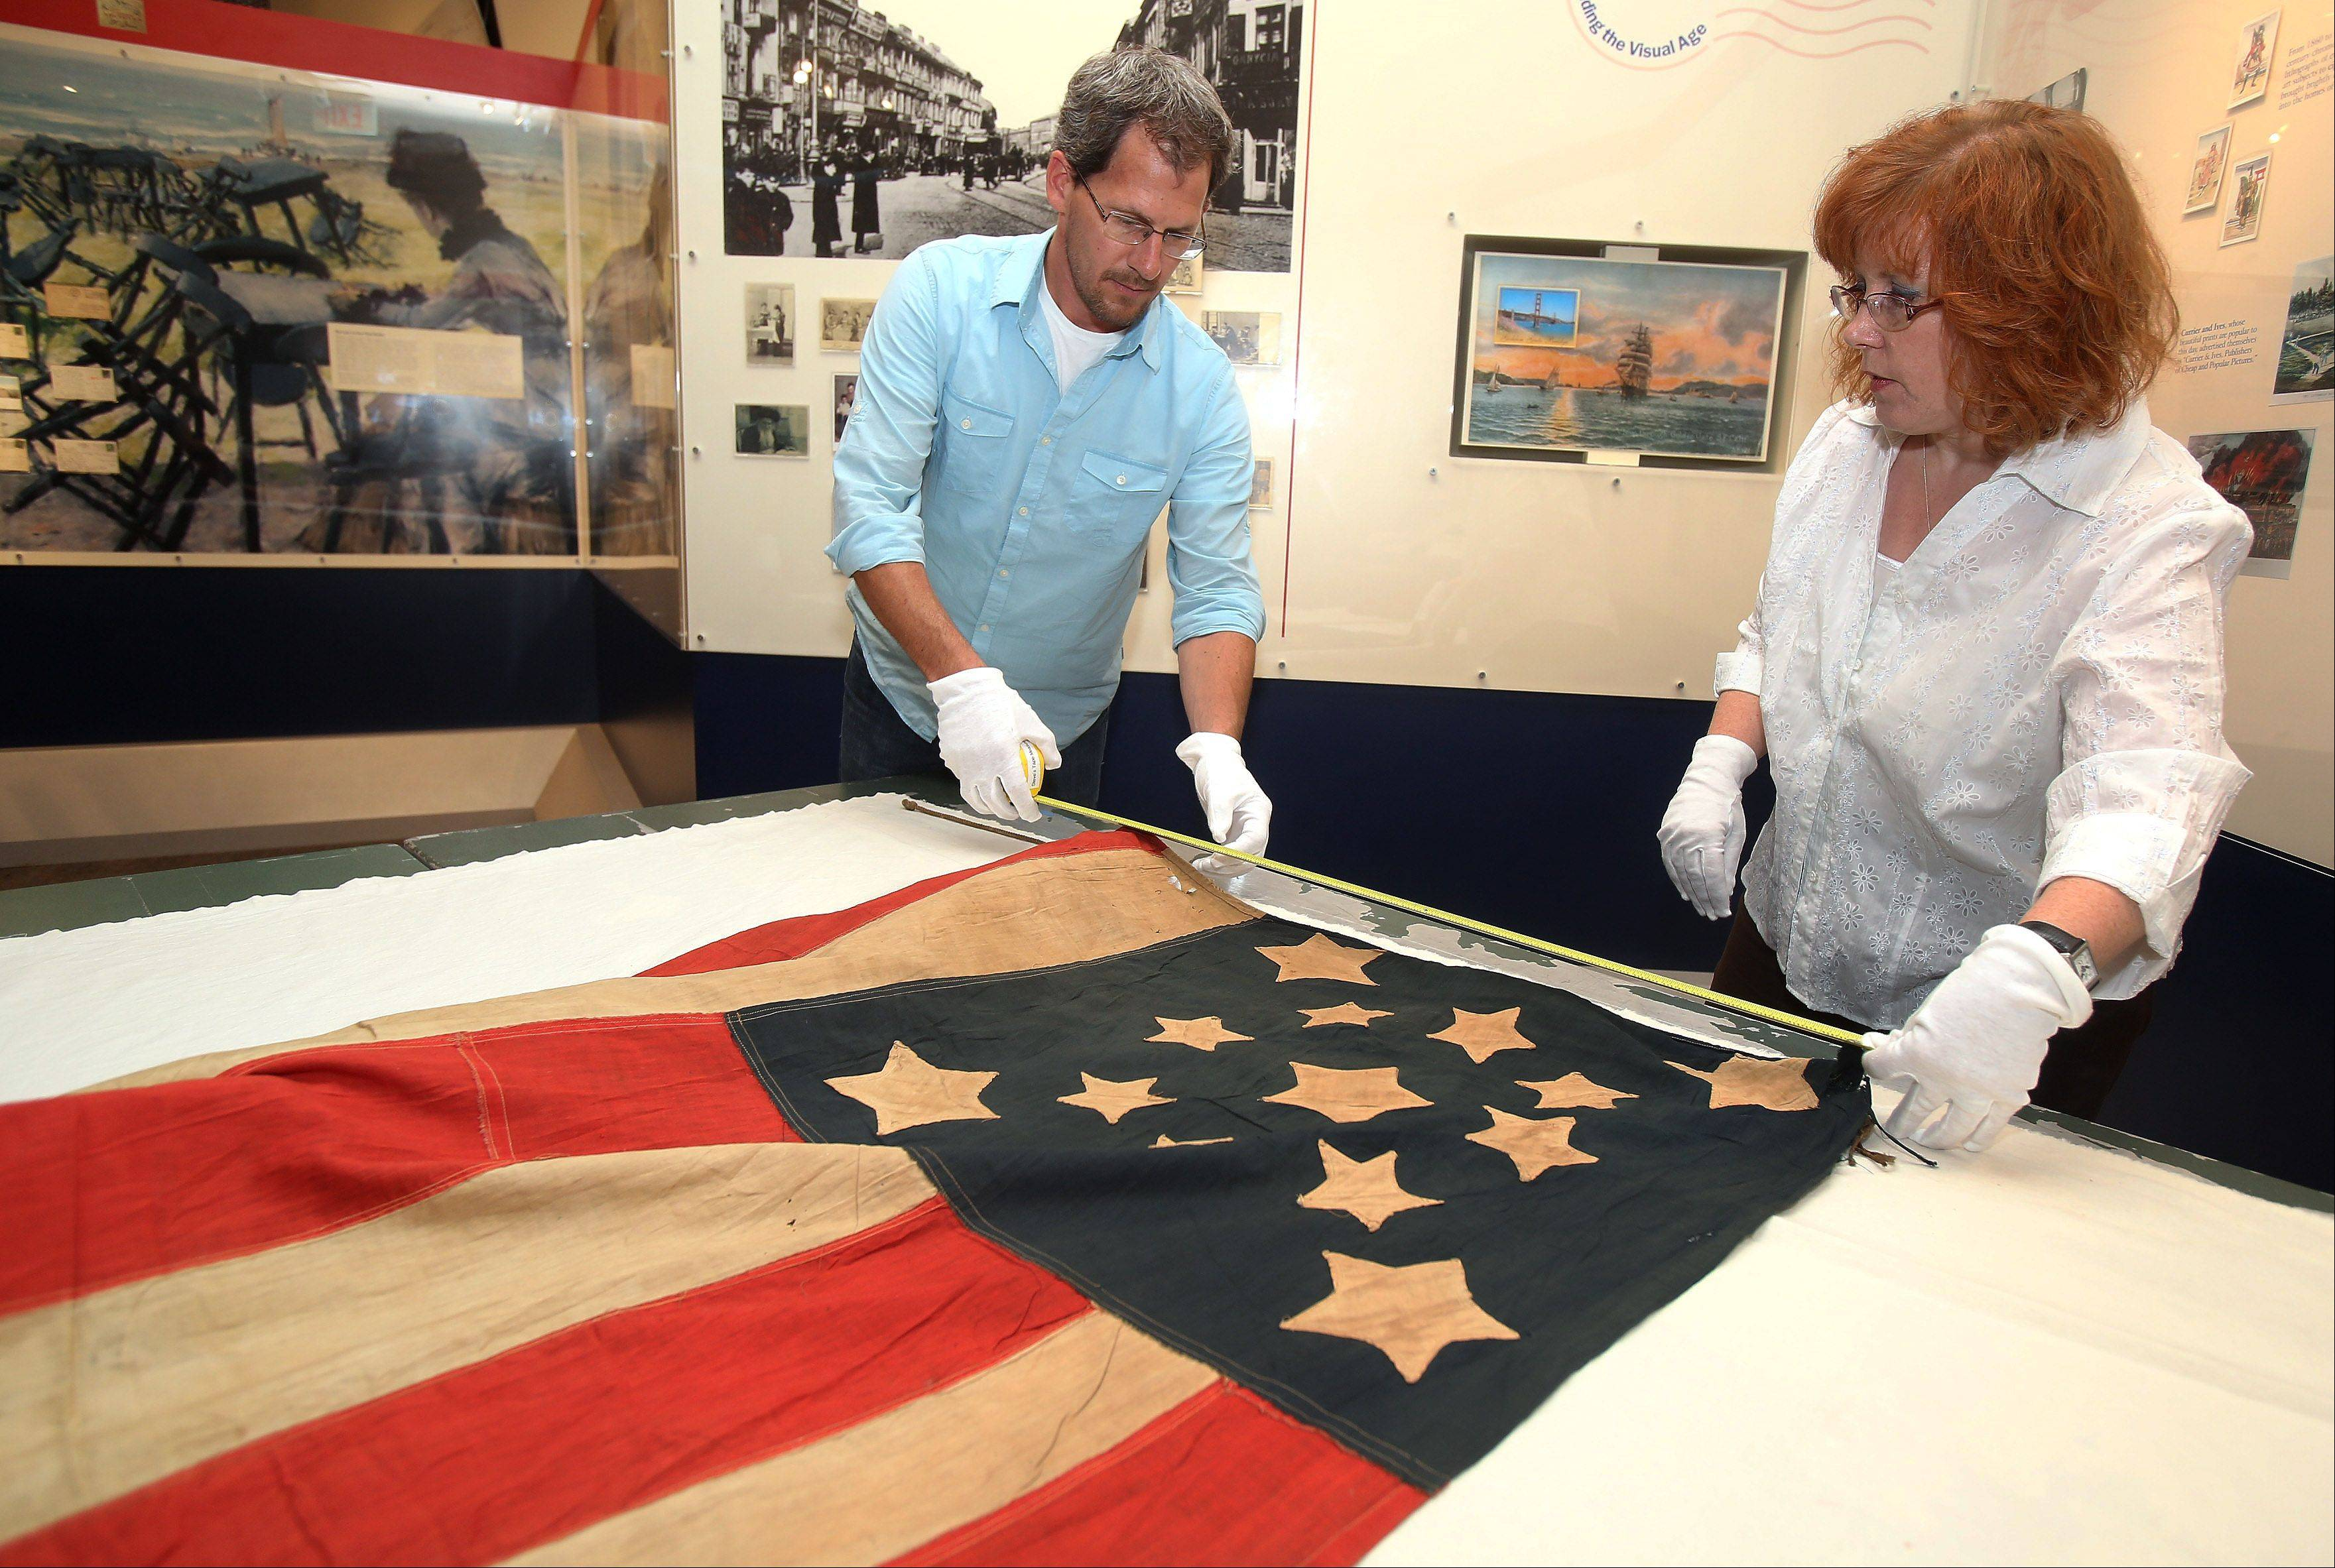 Exhibits manager Steve Furnett and collections coordinator Diana Detske prepare a Civil War flag for viewing Wednesday at the Lake County Discovery Museum near Wauconda. The flag was donated by descendants of Civil War veteran Edward Murray after it was found hidden in a shoe box.